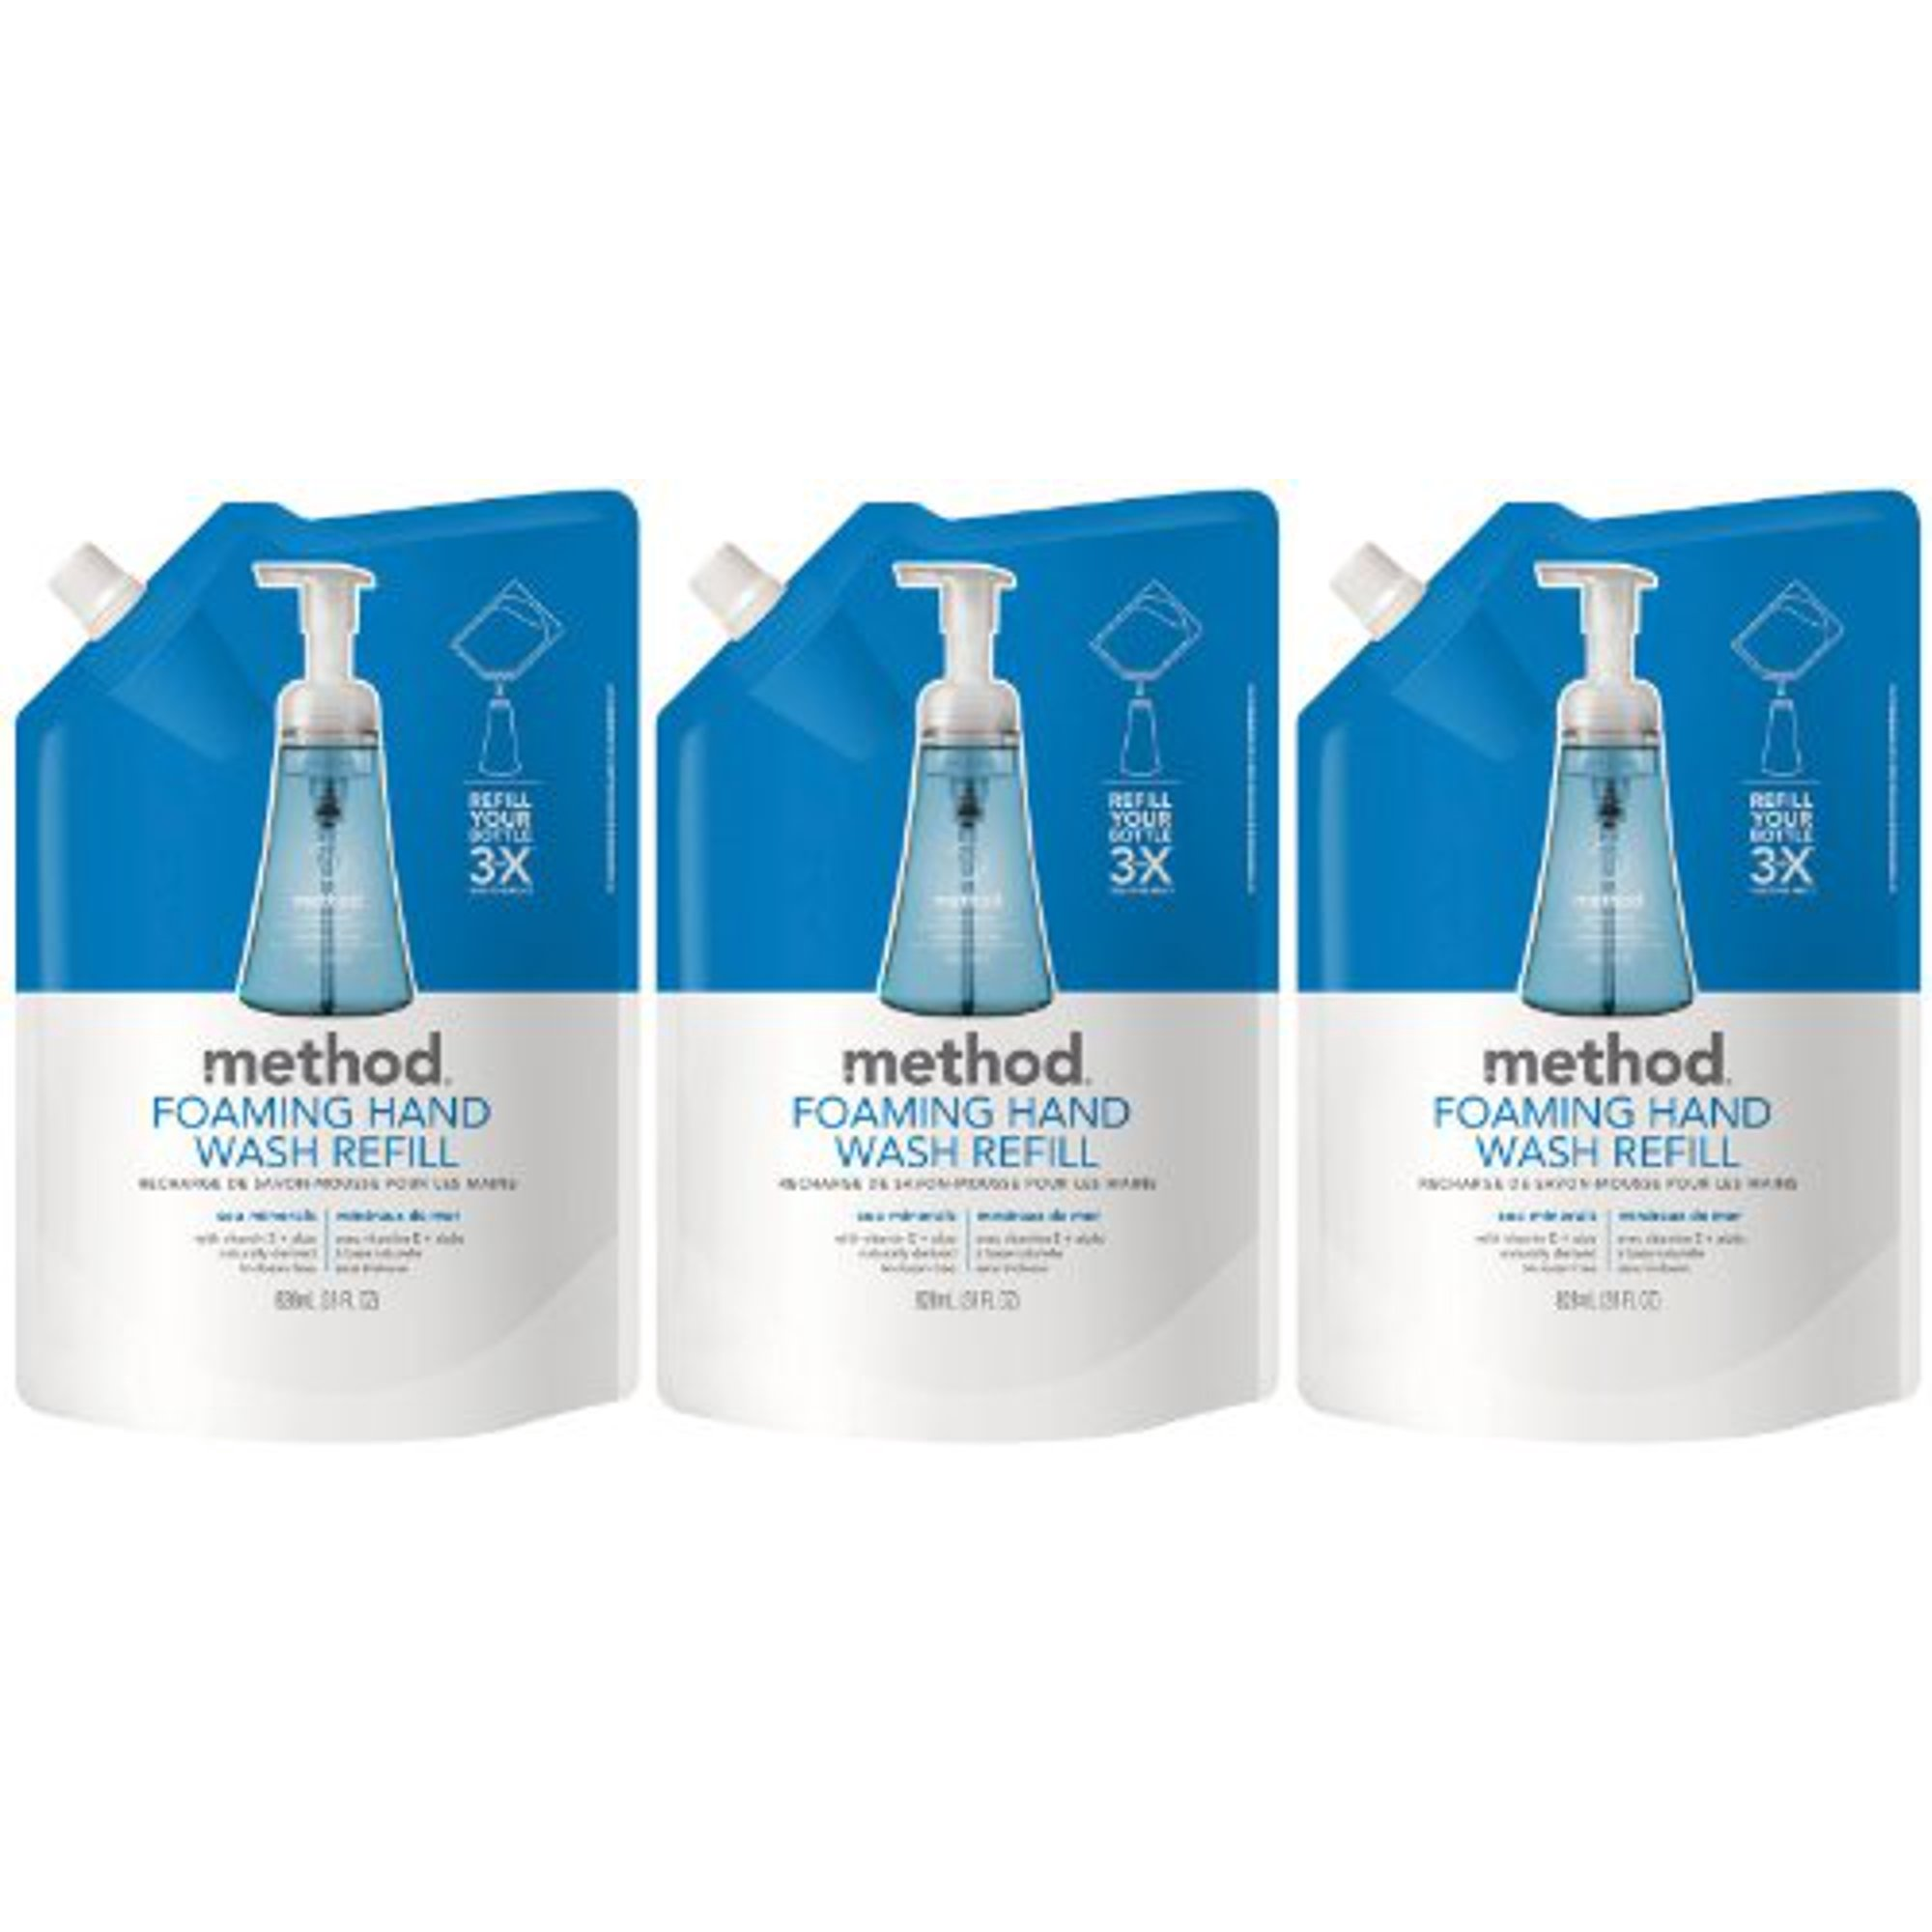 728f92d6017d Method Foaming Hand Wash Refill Pouch, Sea Minerals, 28oz, 3pk